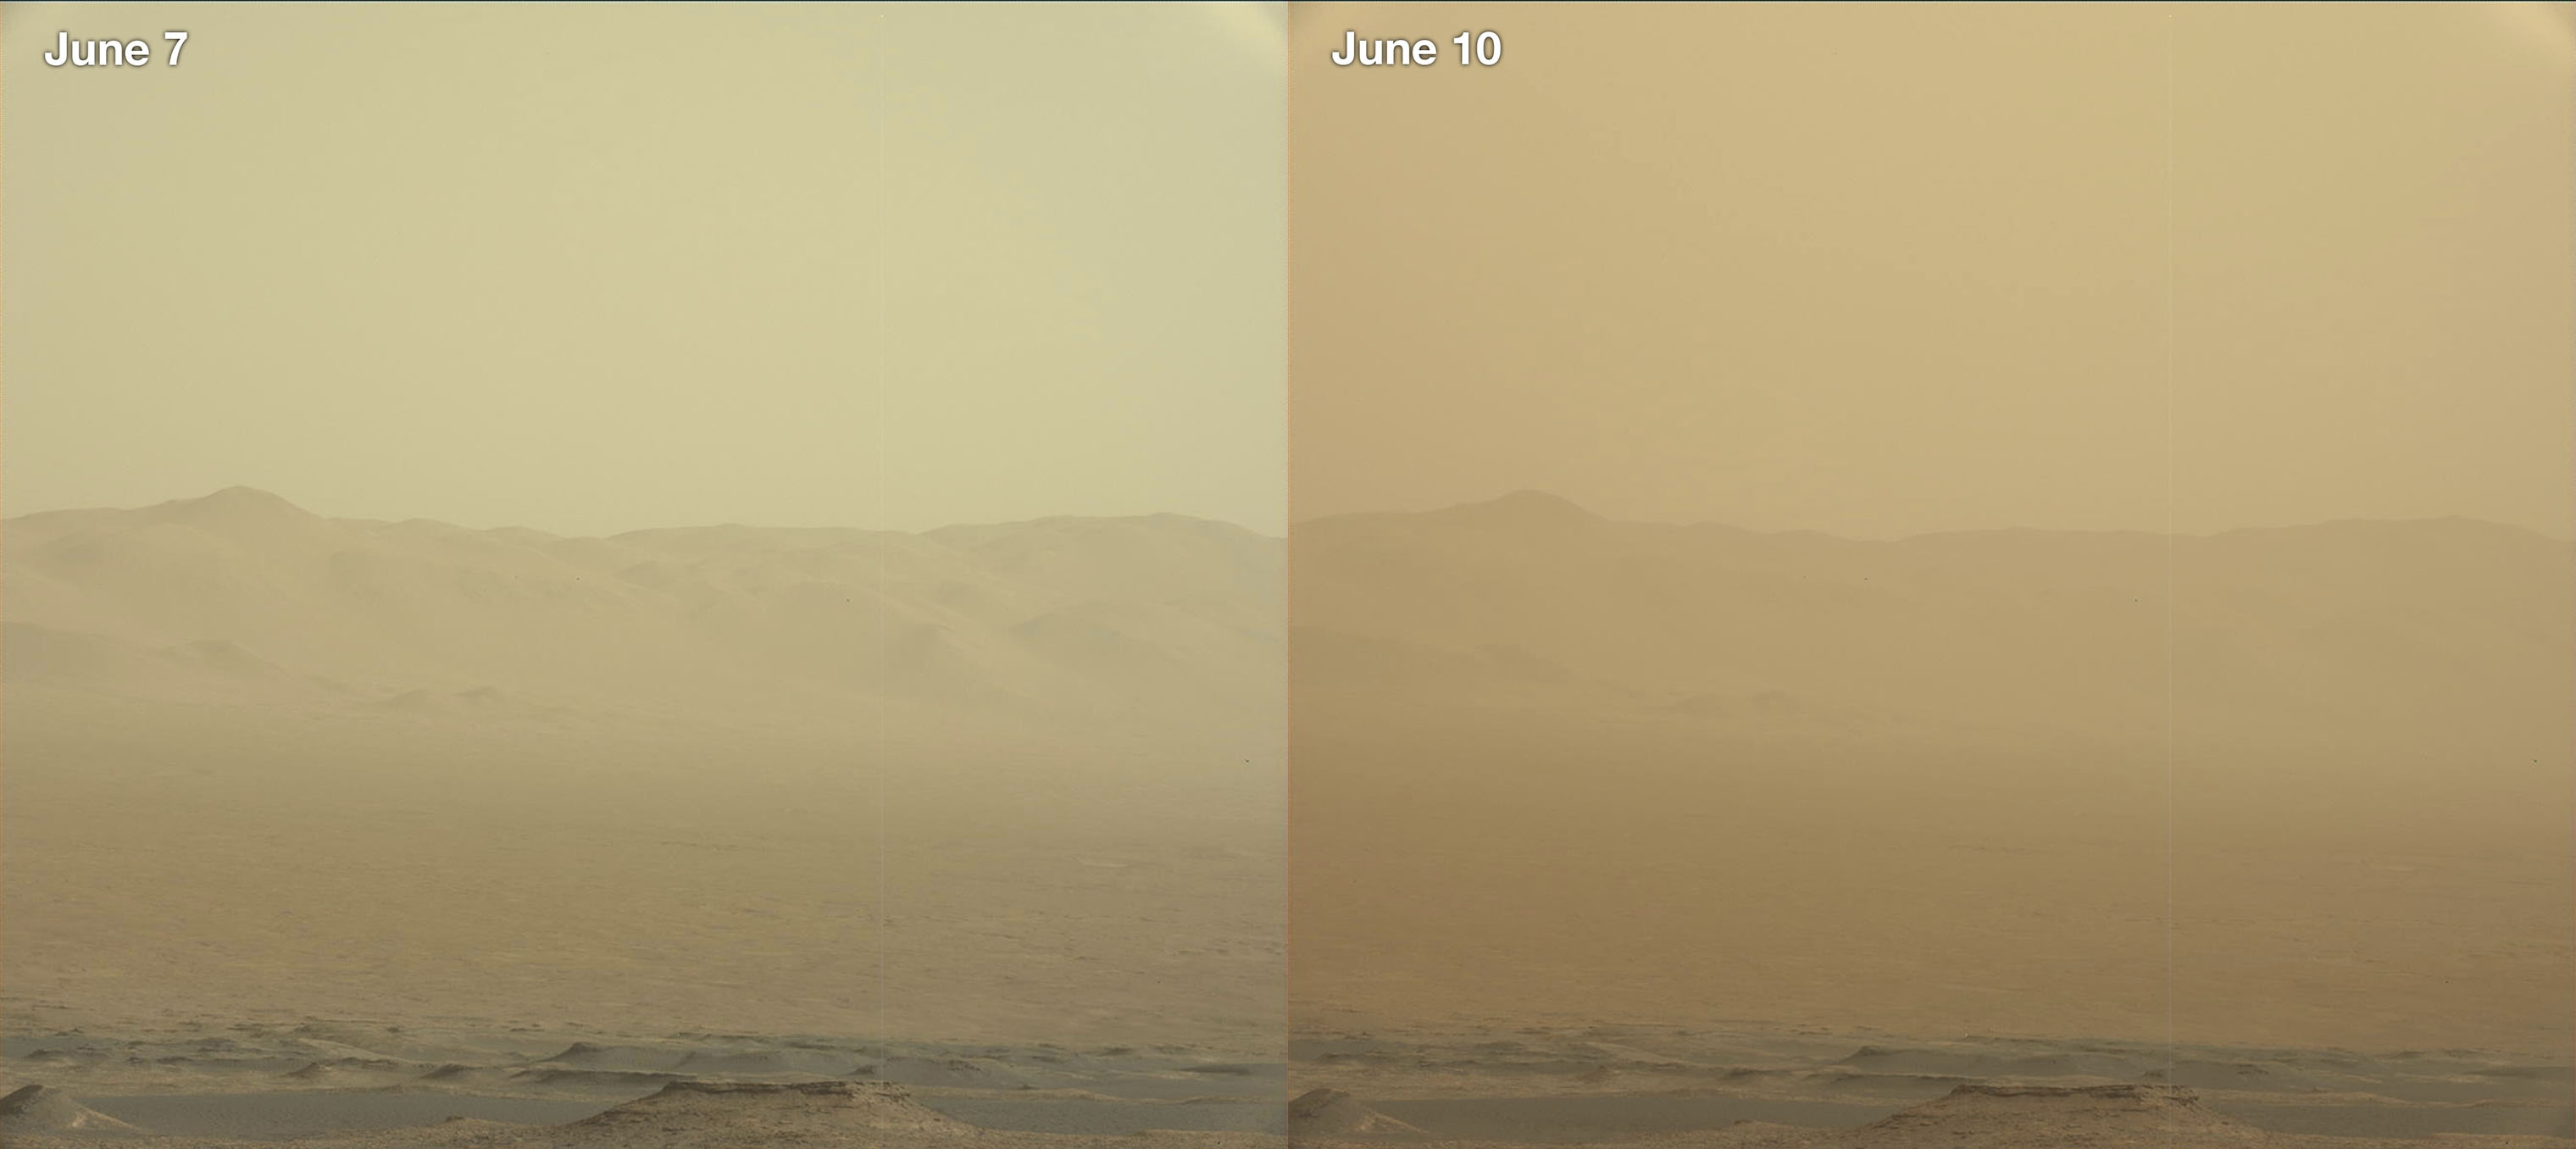 This combination of images made by NASA's Curiosity rover shows the rim of the Gale Crater on June 7 and 10, 2018, during a major dust storm. The Opportunity rover, which is inside the crater, fell silent as the storm blotted out the sun. On June 12, 2018, flight controllers tried to contact Opportunity, but the rover did not respond.